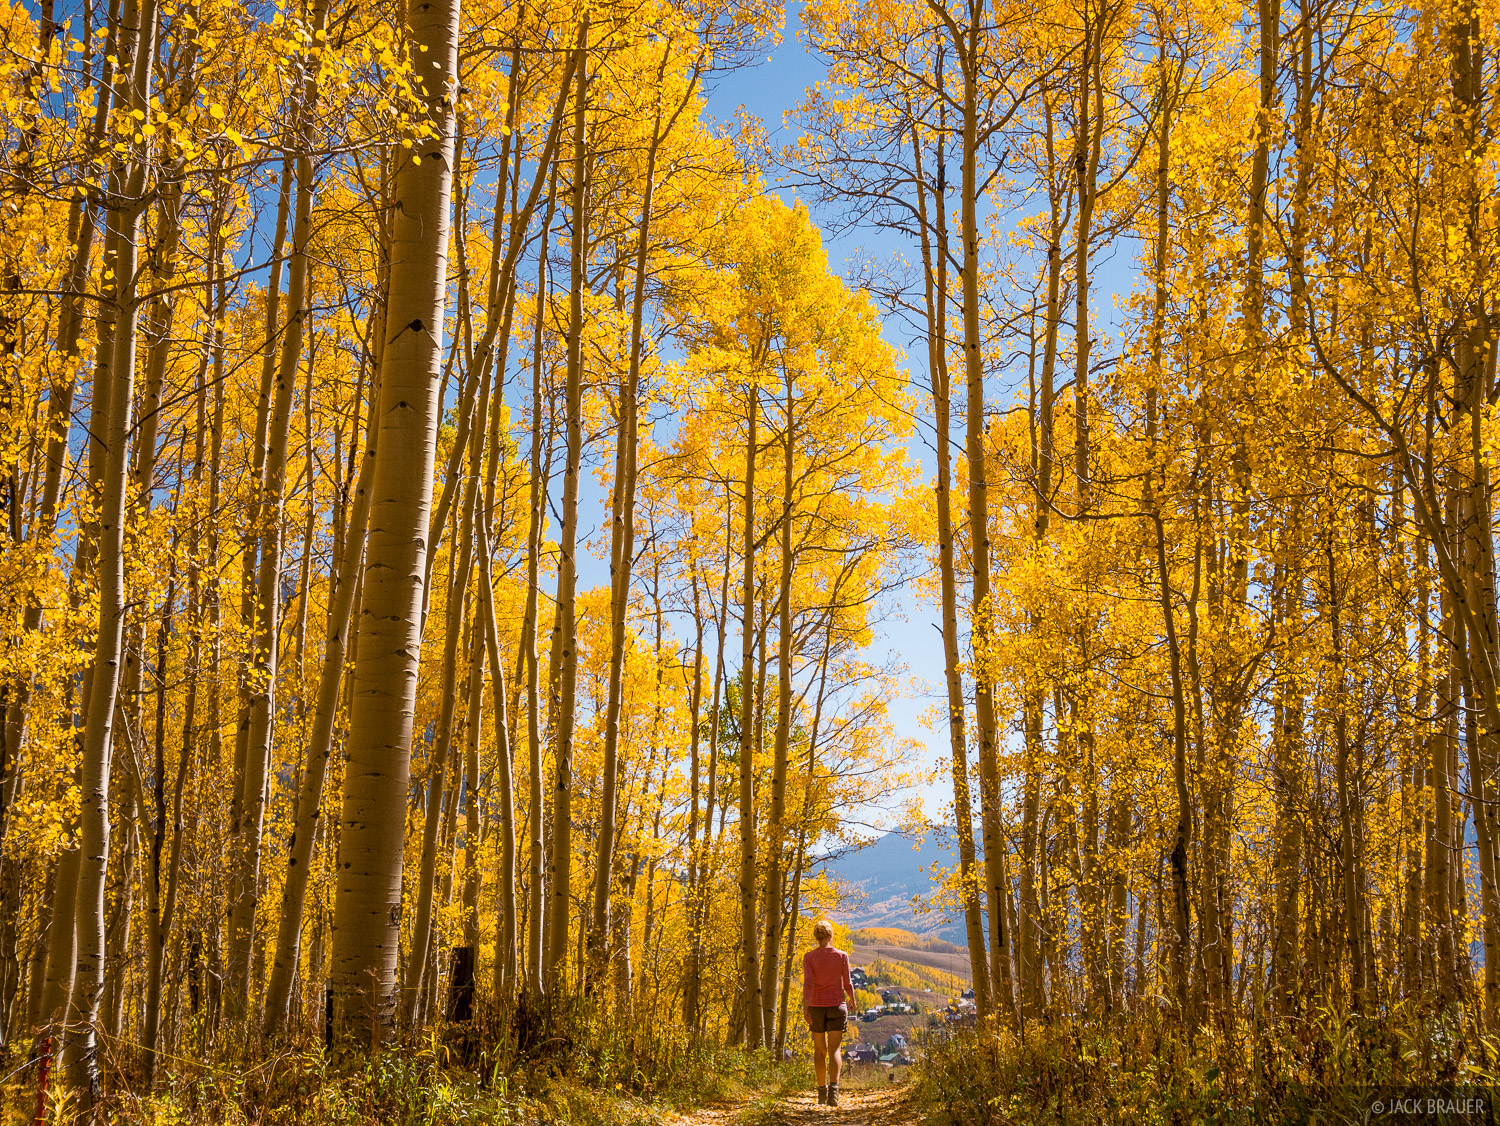 Colorado,Crested Butte,aspens, hiking, photo